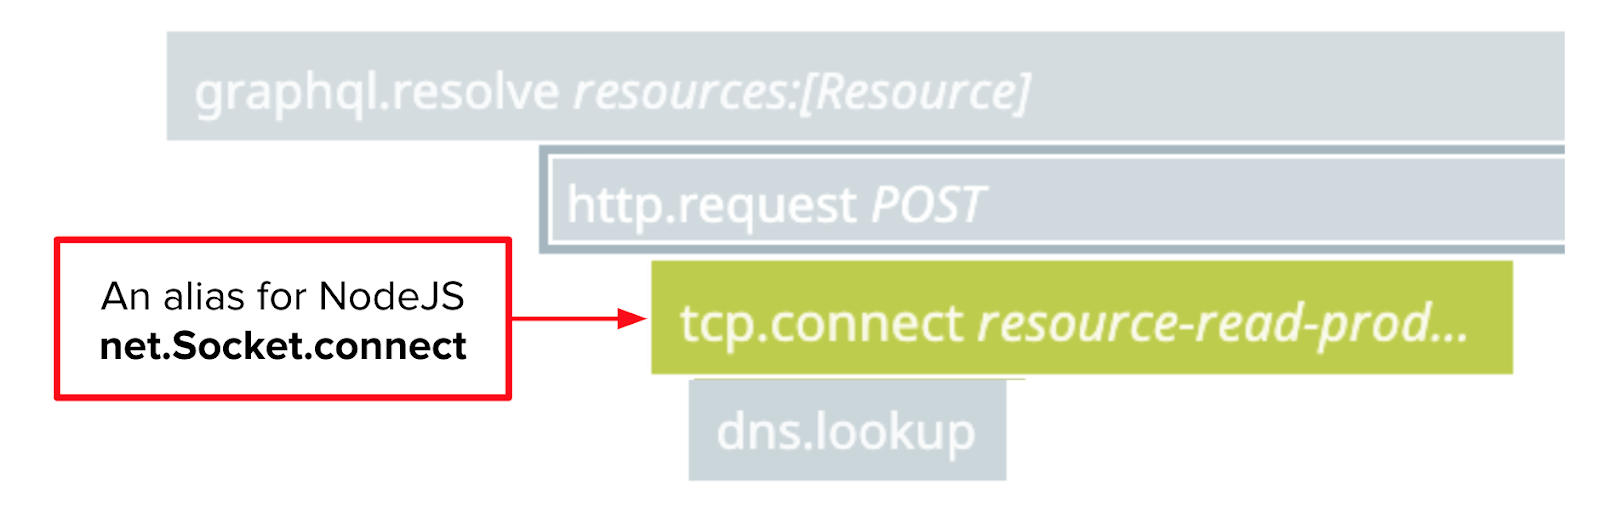 net.Socket.connect is aliased as tcp.connect